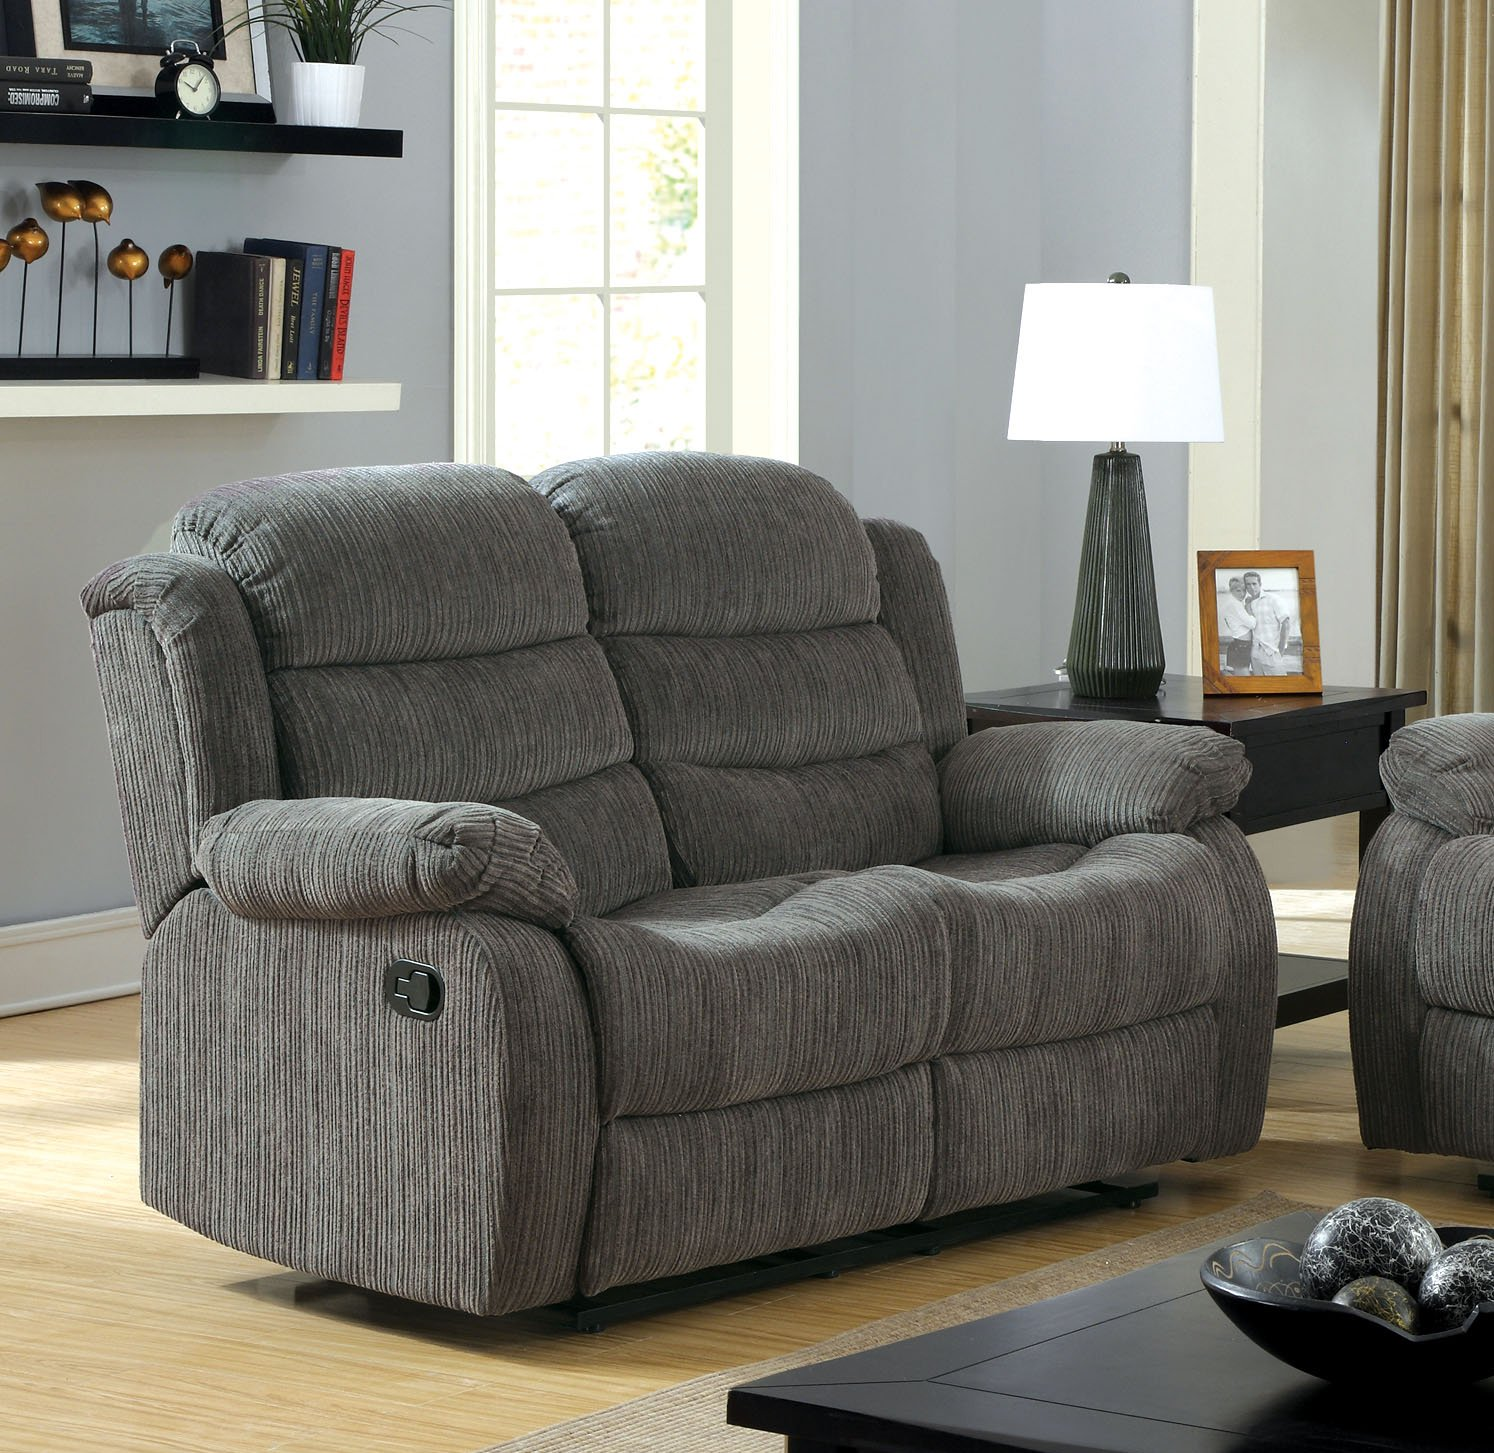 Furniture of America Blake Chenille Love Seat with 2-Recliner - Gray